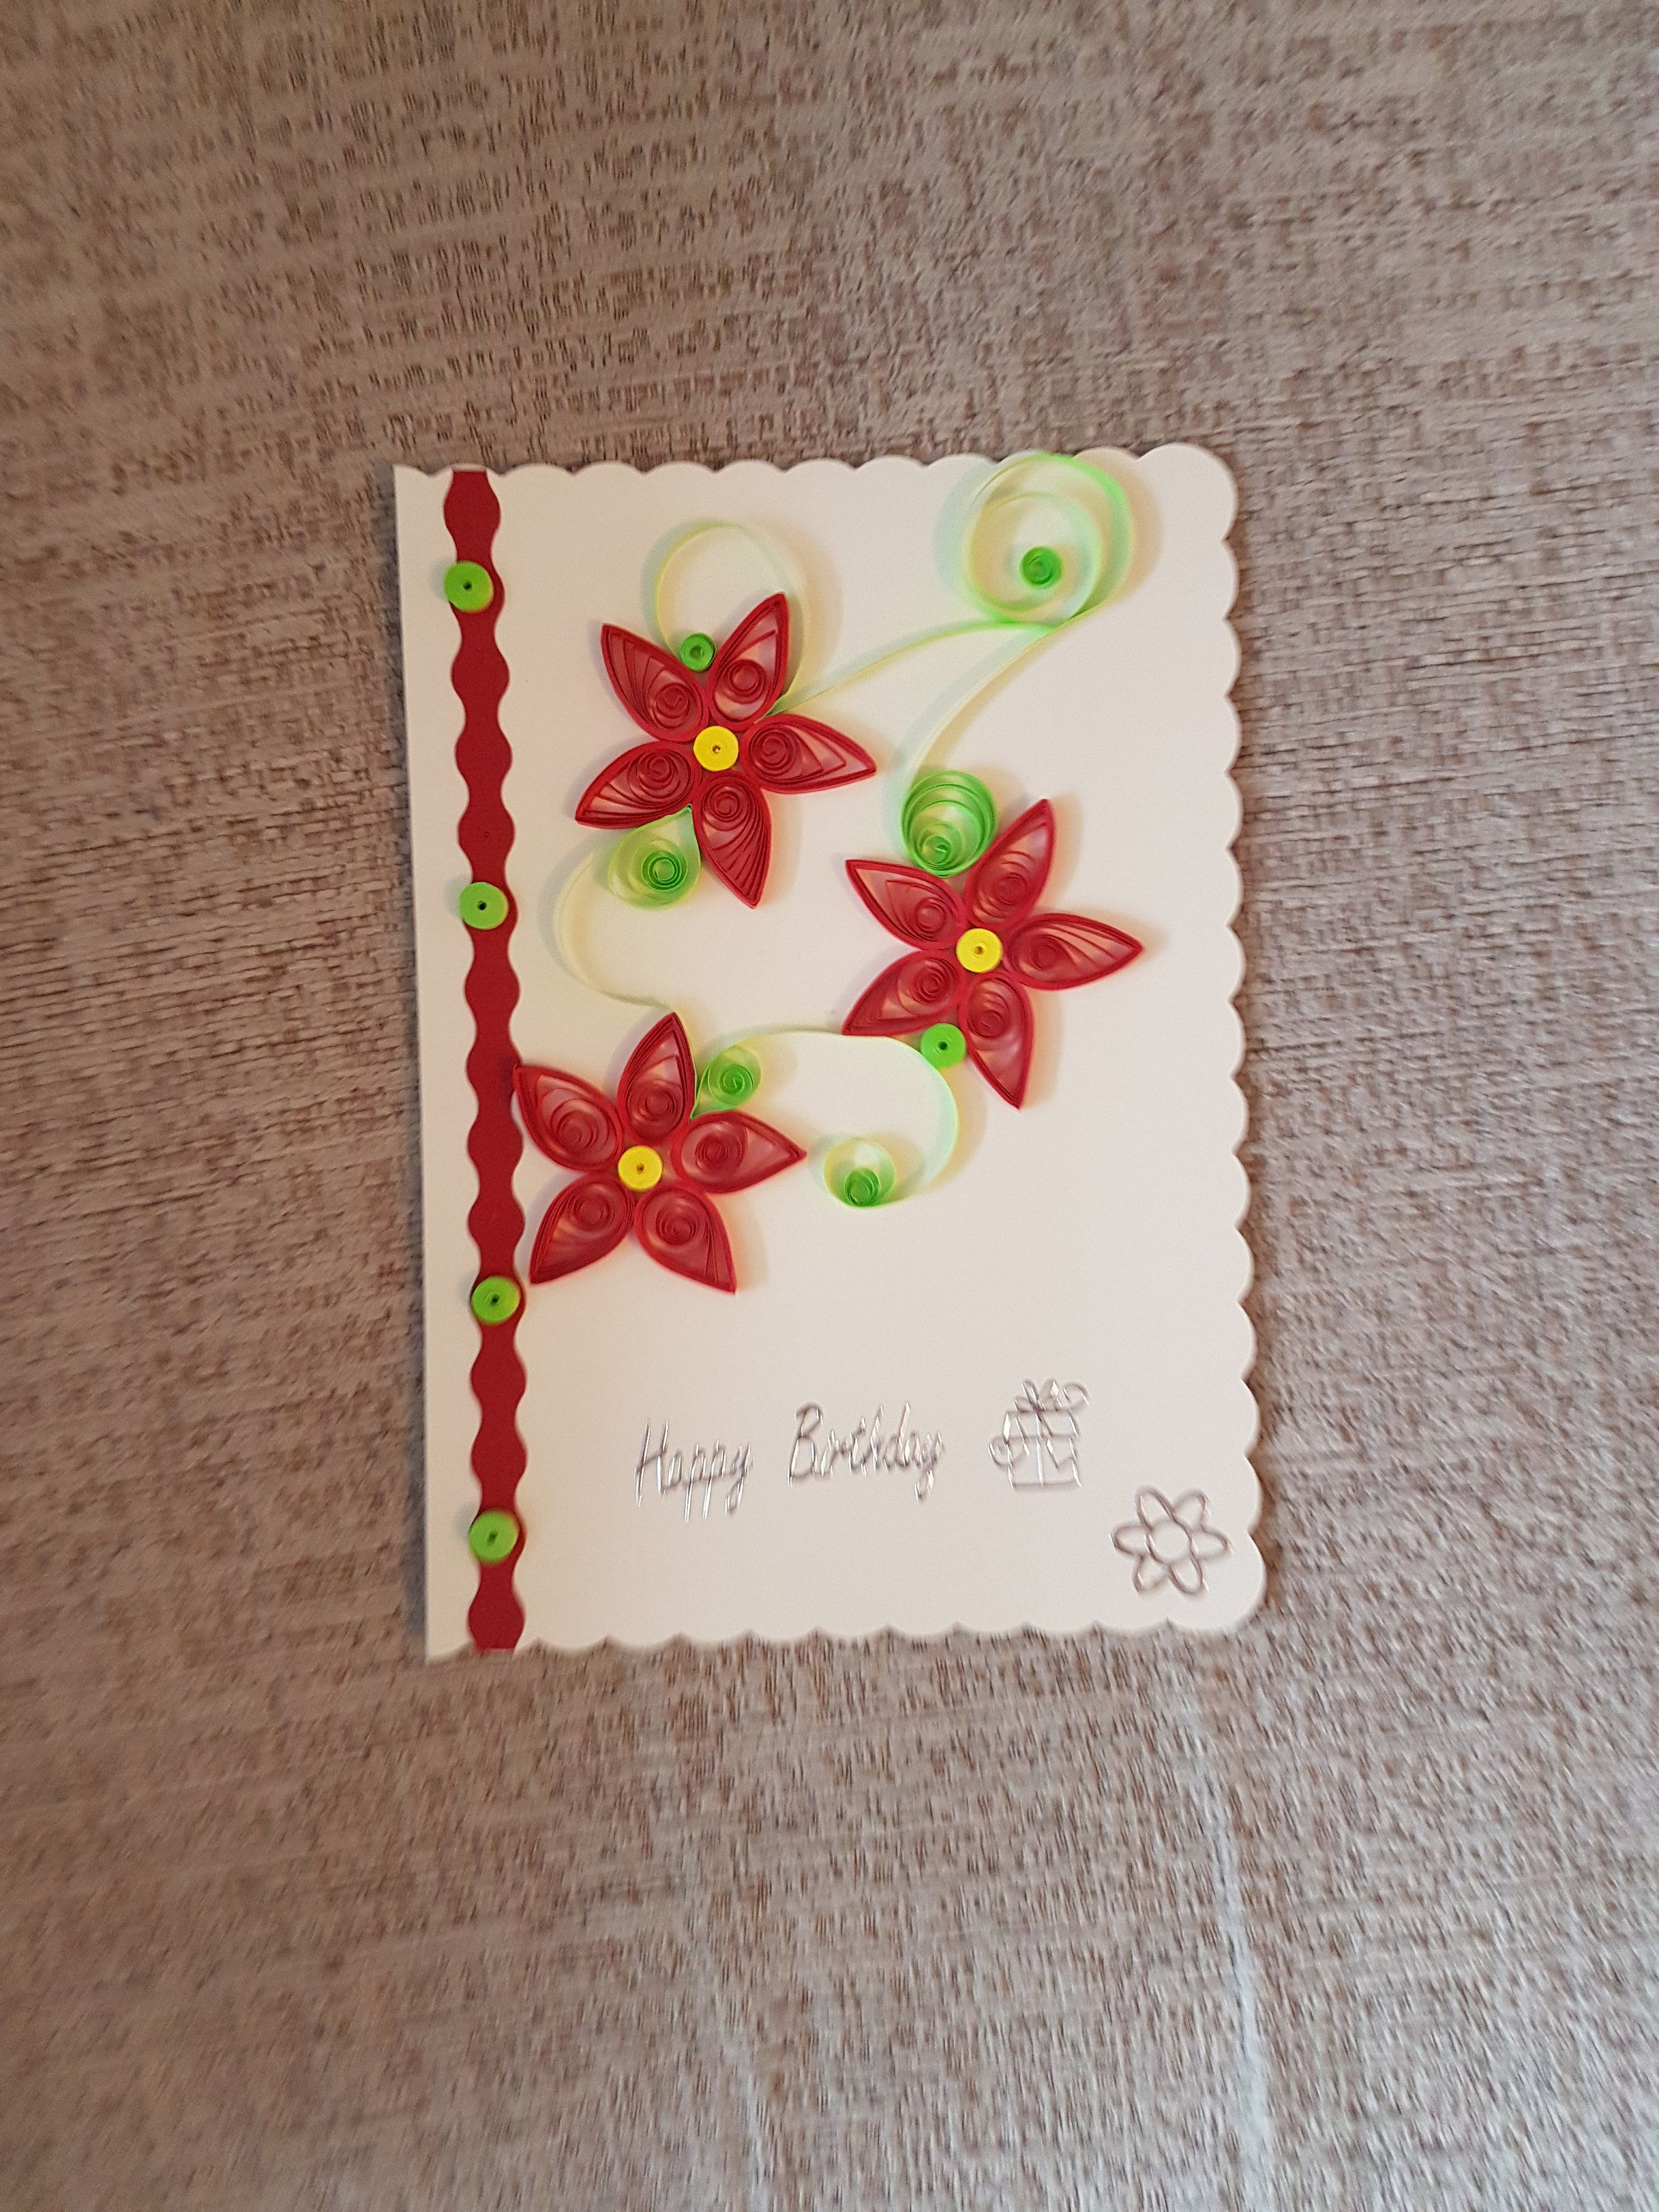 Handmade quilling greeting birthday card with flowers quilling handmade quilling greeting birthday card with flowers izmirmasajfo